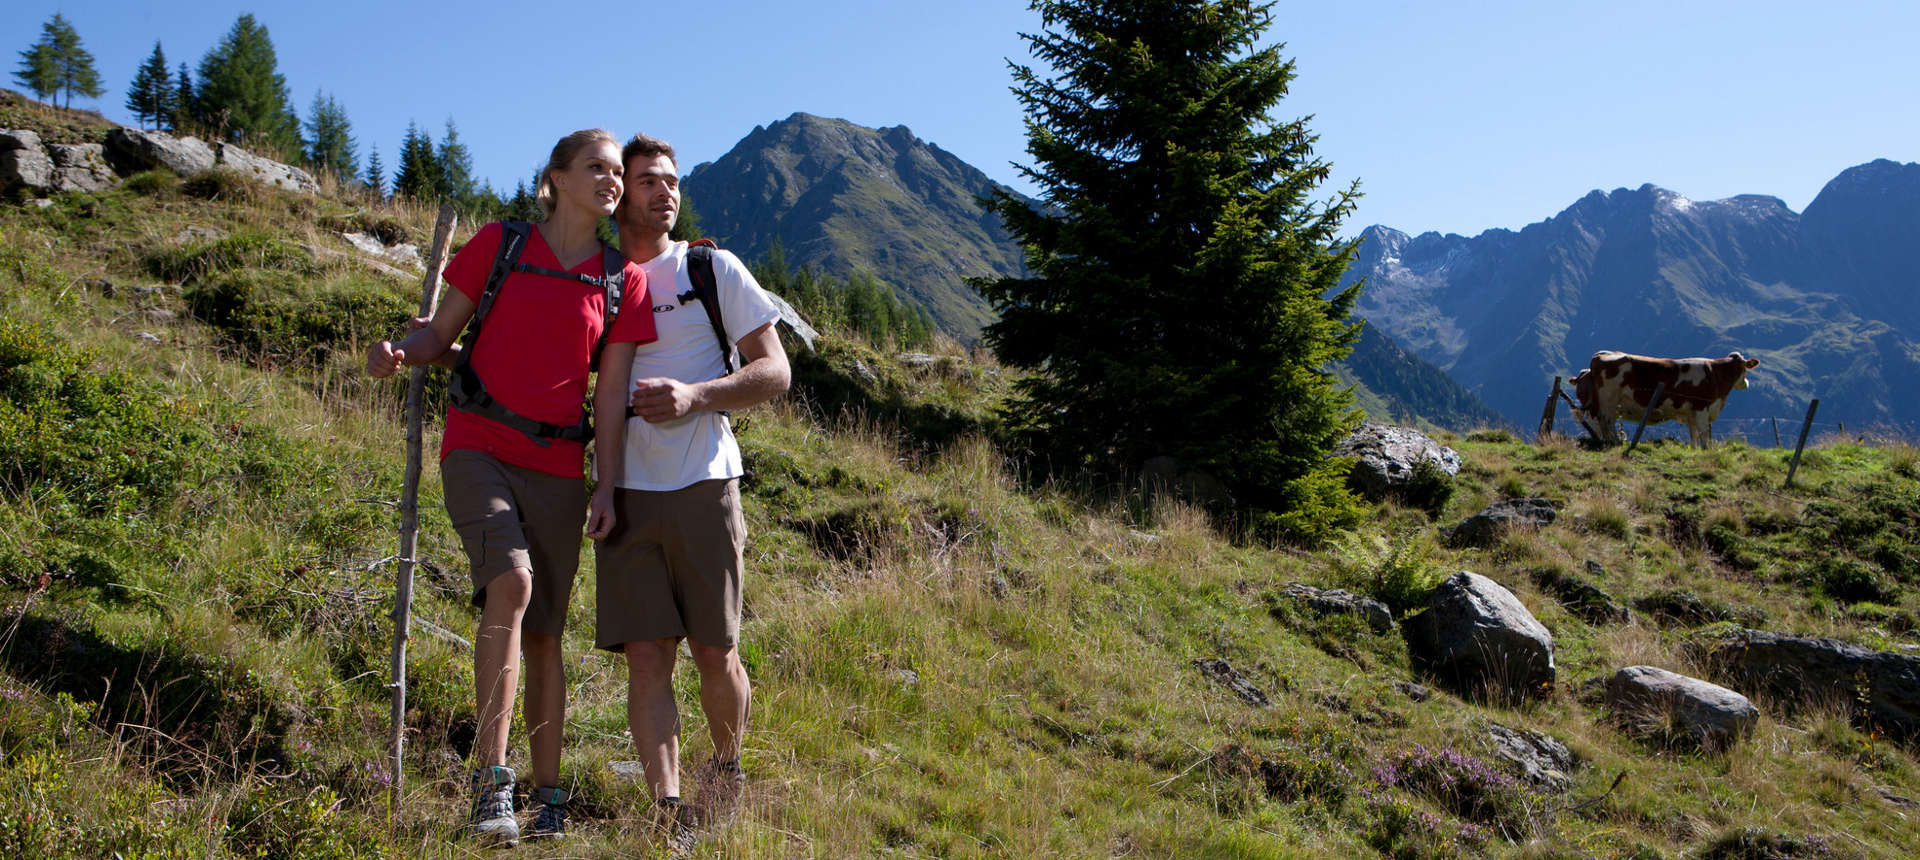 Hiking in the mountains at the national park in the region Grossglockner - Zellersee